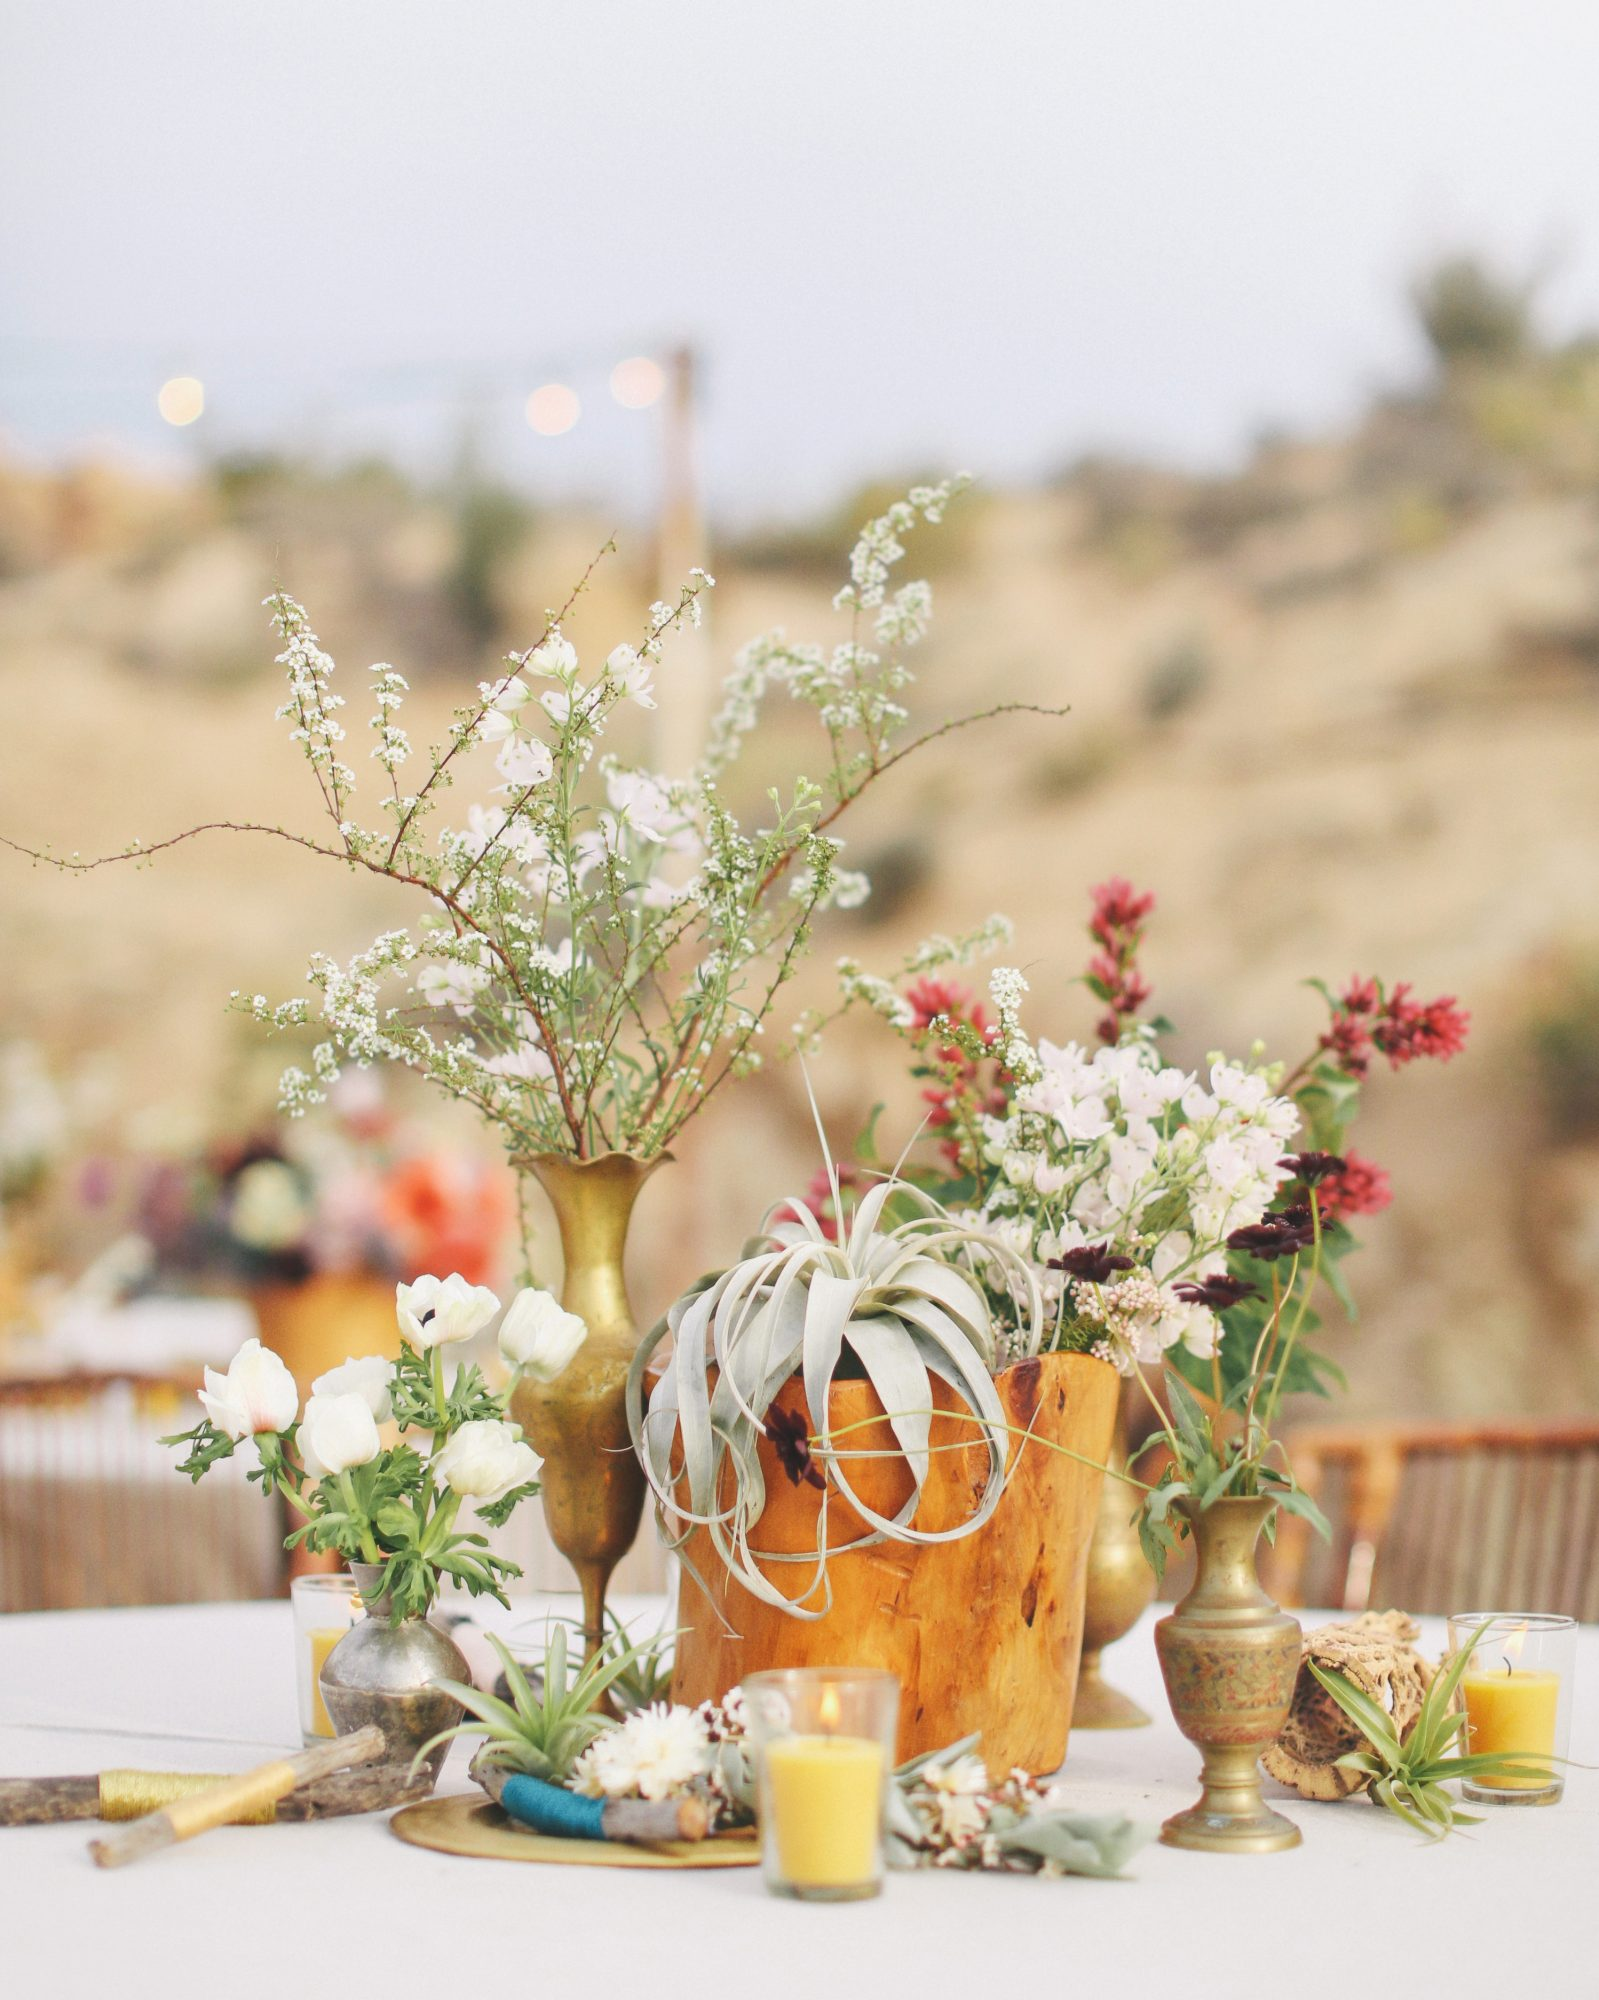 christen-billy-wedding-centerpiece-048-011-s111597-1014.jpg